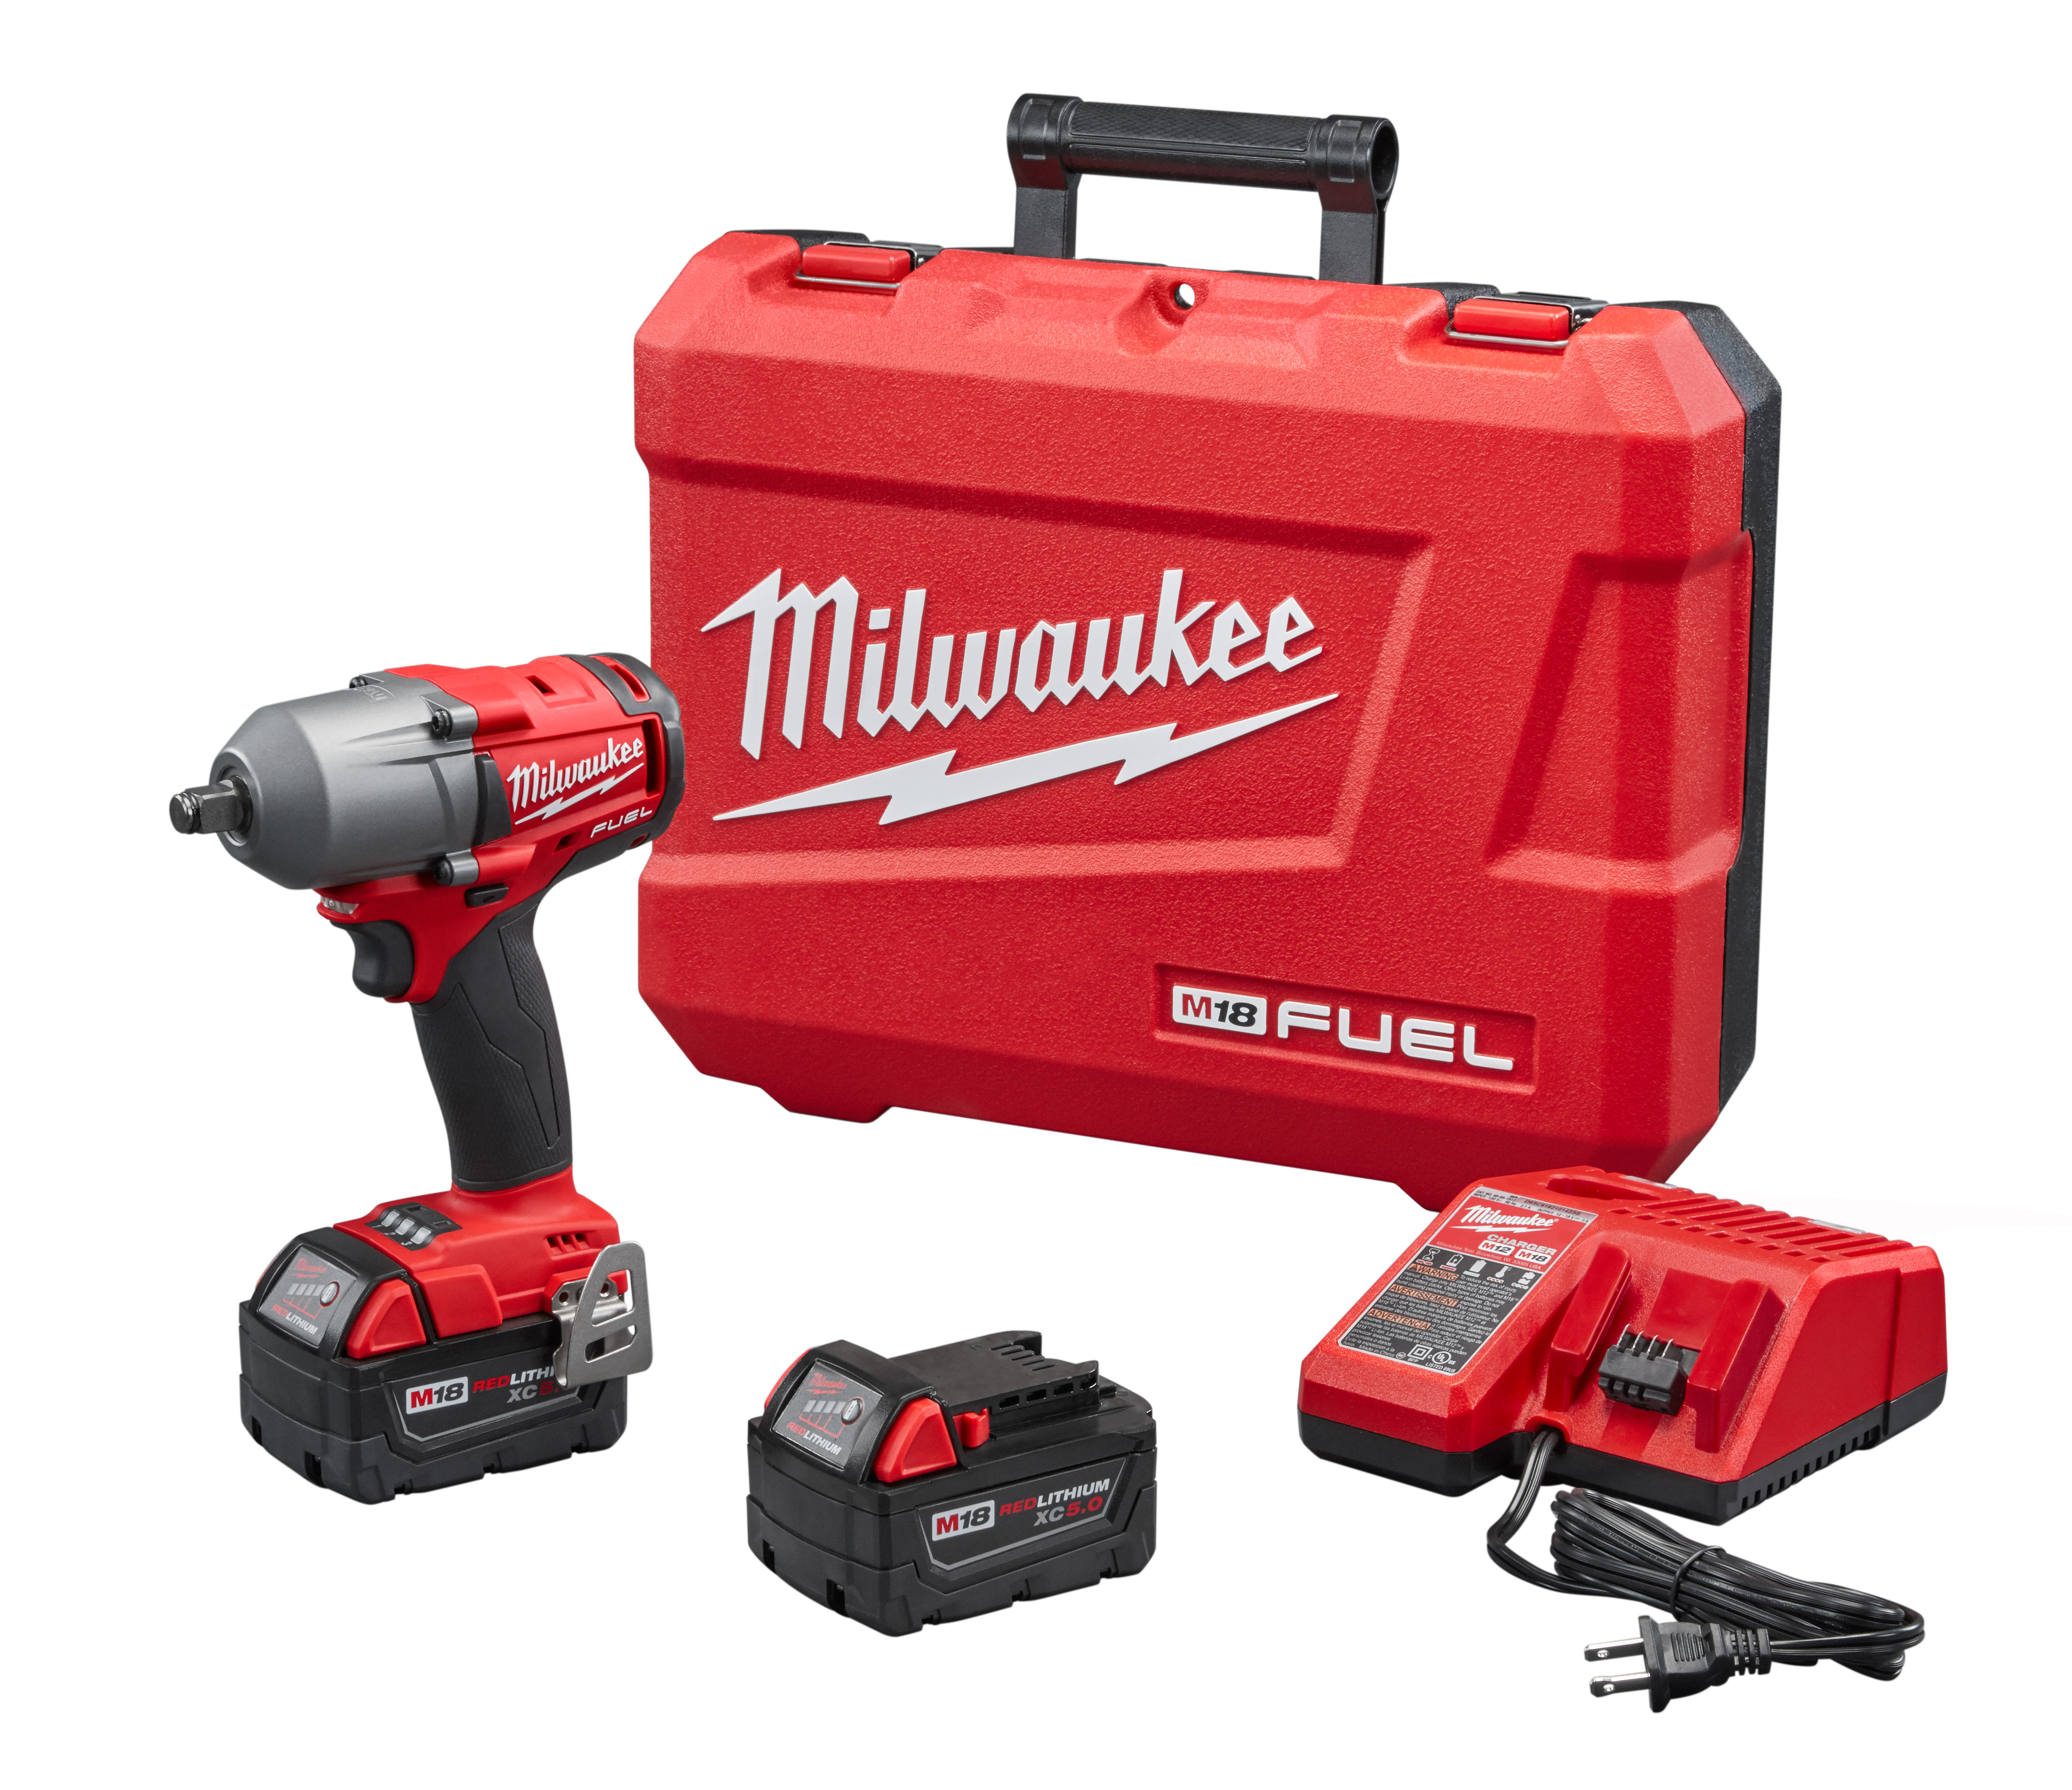 Milwaukee® M18™ FUEL™ 2861-22 Mid Torque Cordless Impact Wrench Kit, 1/2 in Straight/Square Drive, 3000 bpm, 600 ft-lb Torque, 18 VDC, 6.77 in OAL